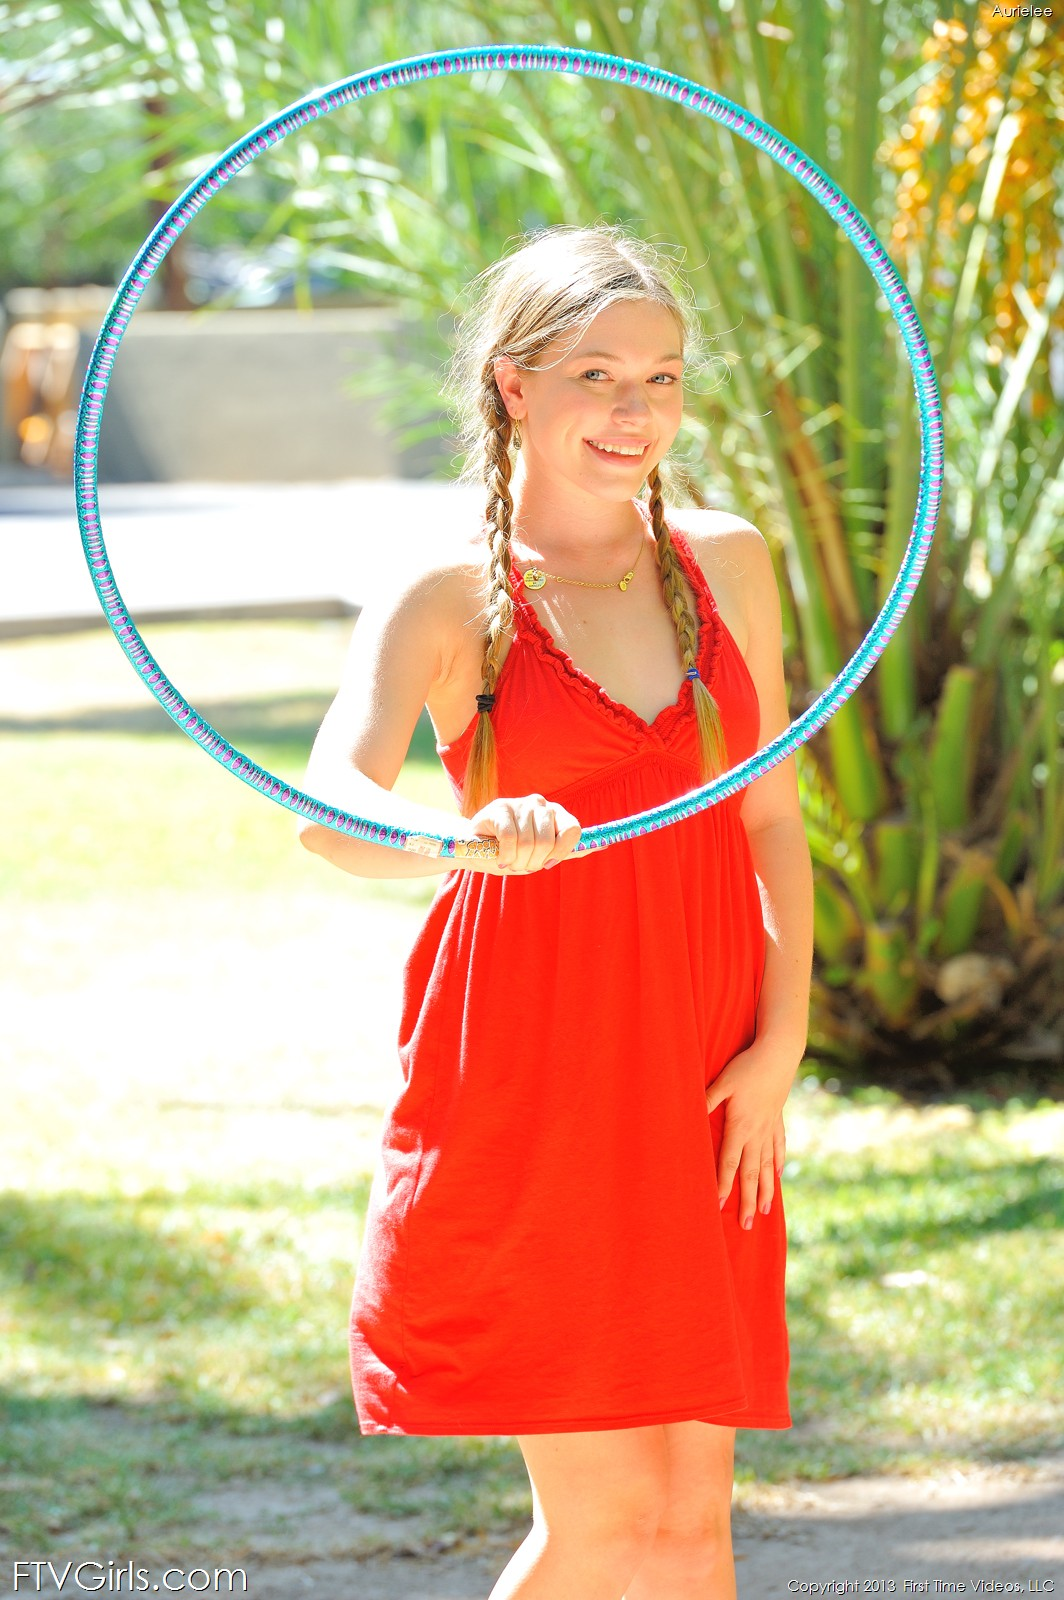 Ftv Girls Naked Hula Hoop